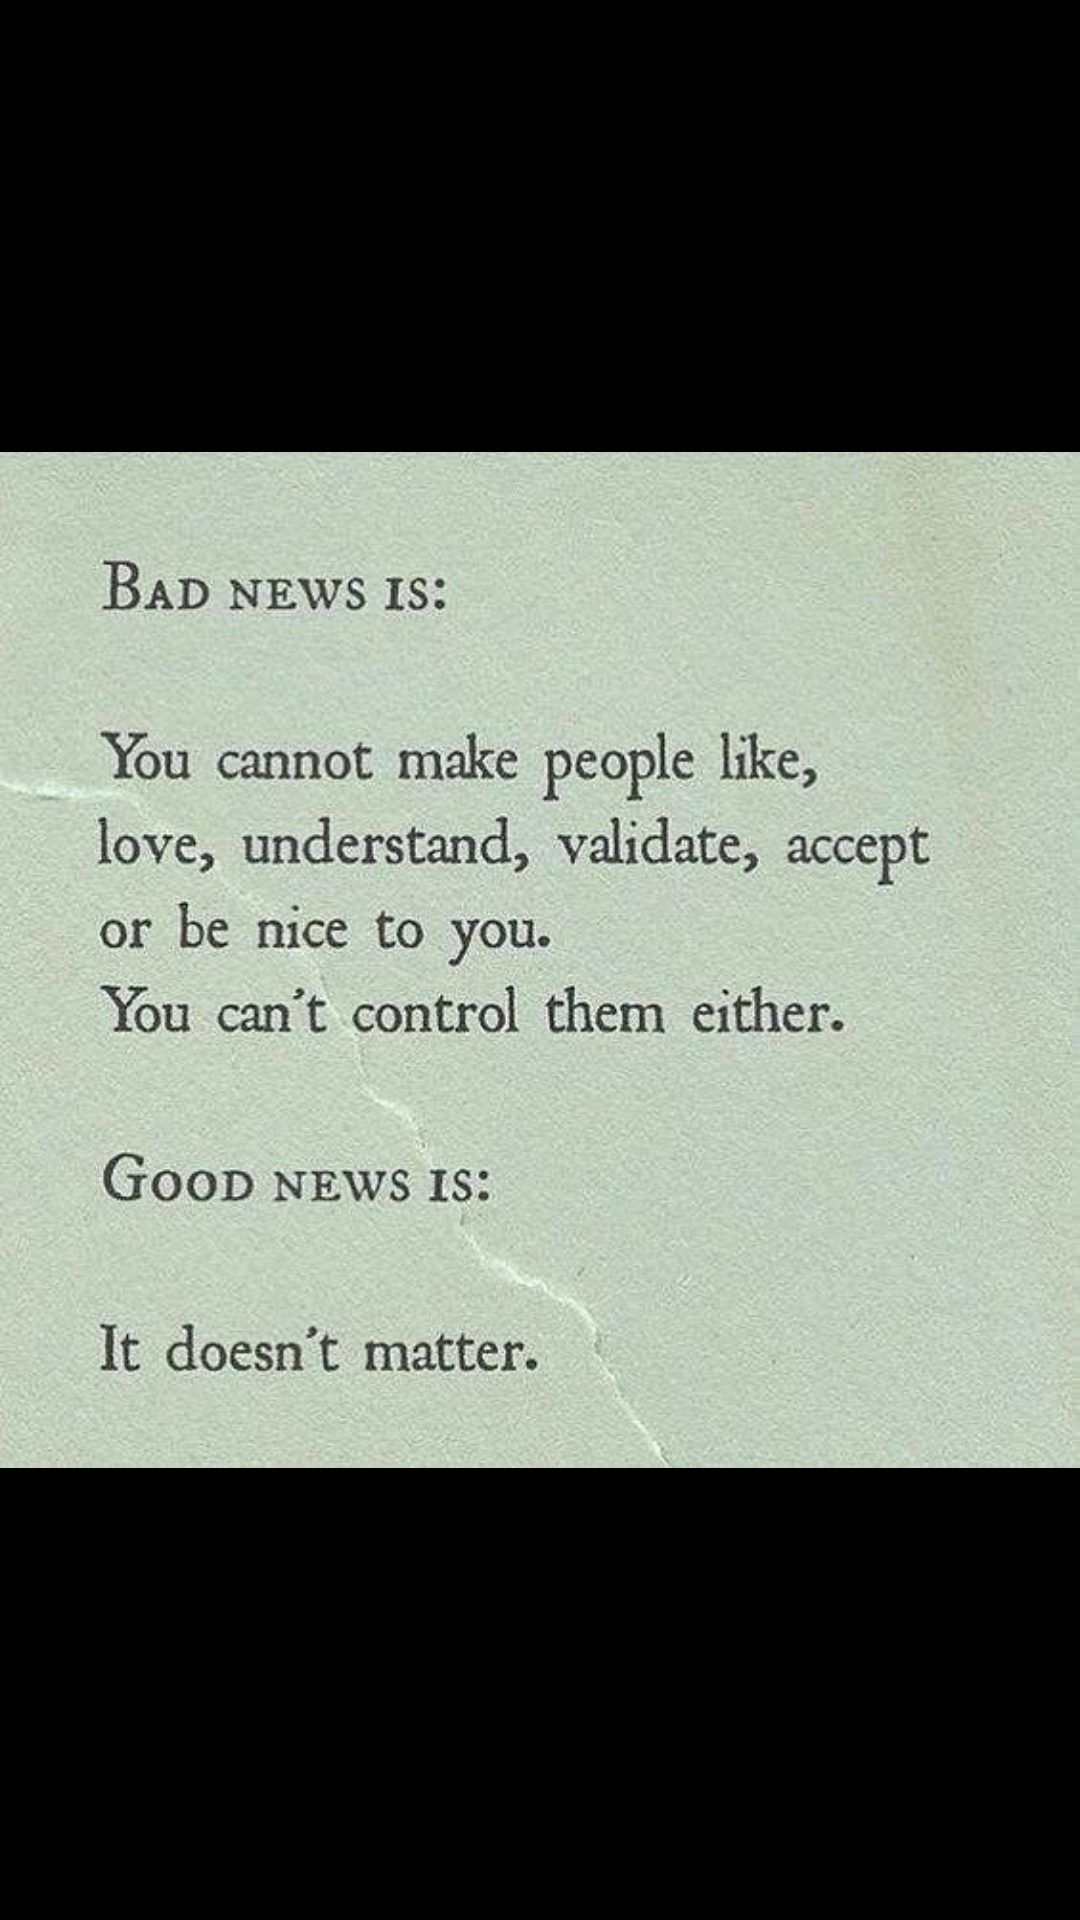 [IMAGE] It doesn't matter.